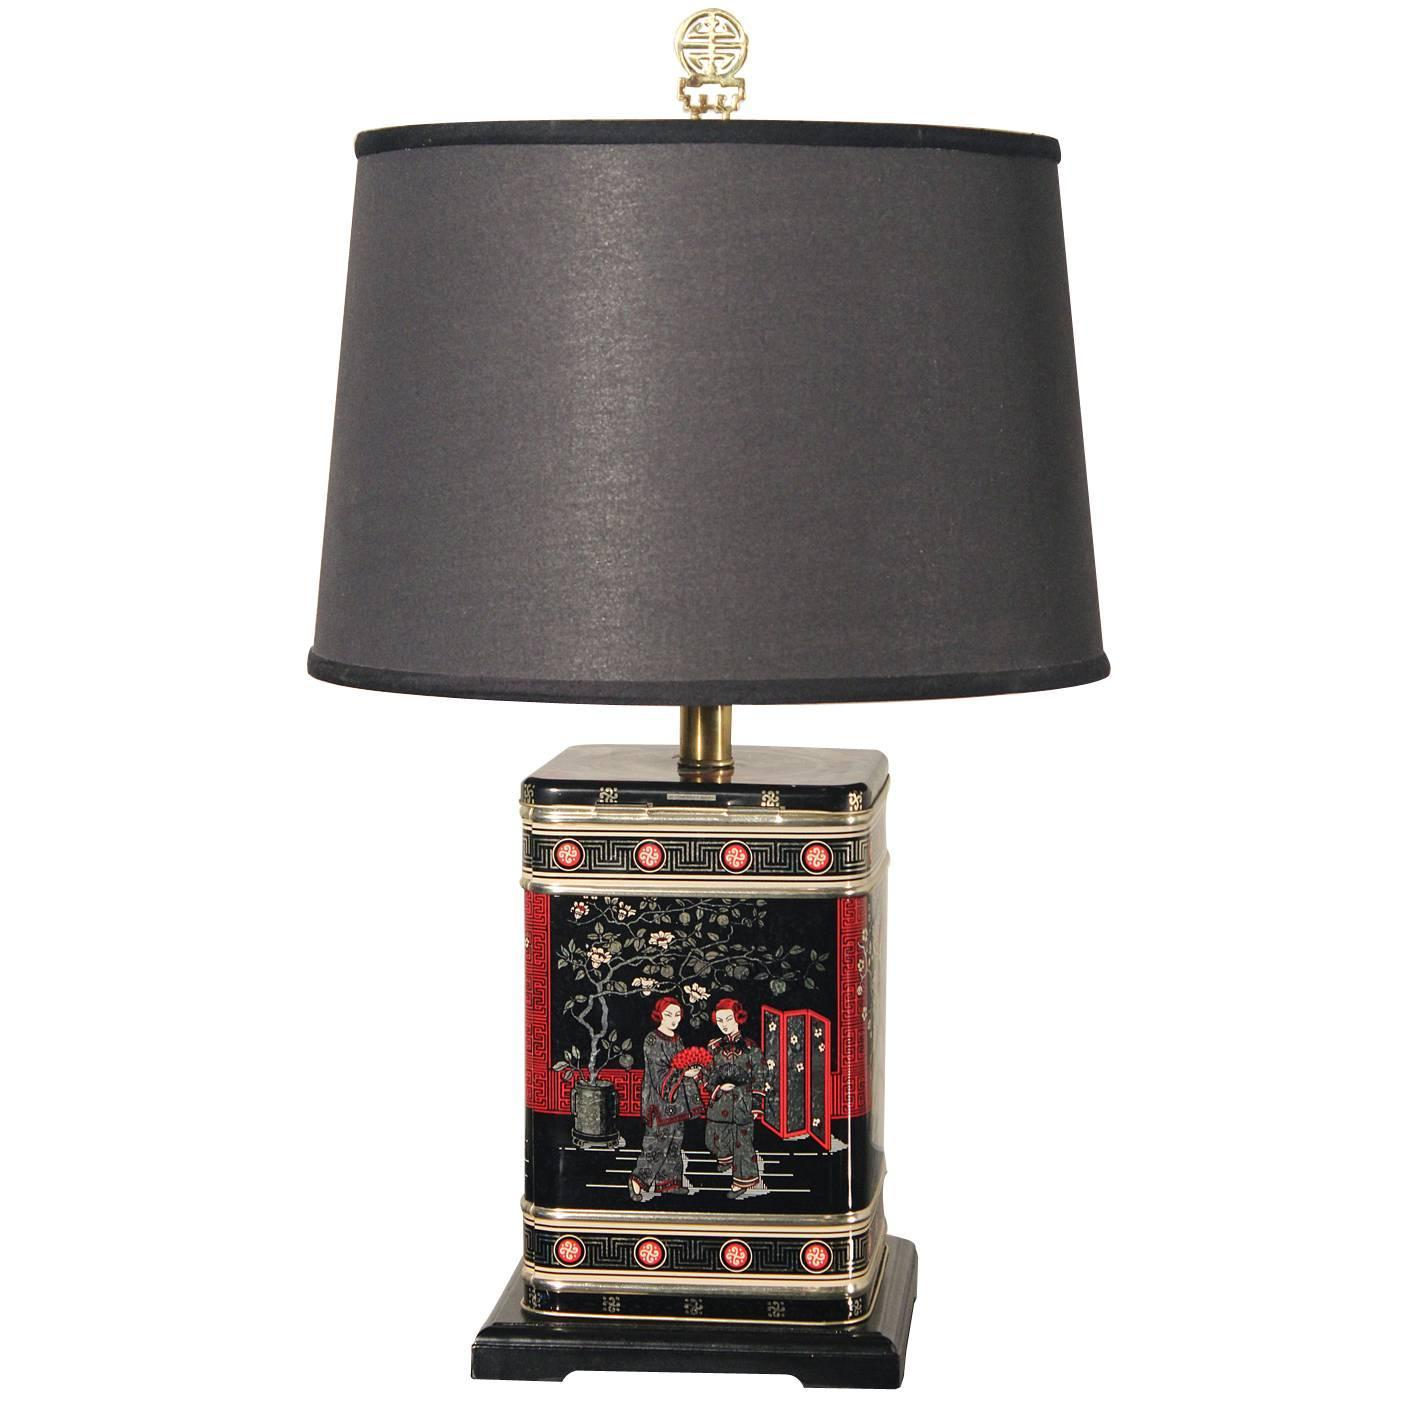 Vintage Chinoiserie Tea Tin Canister Table Lamp Black with Black ...